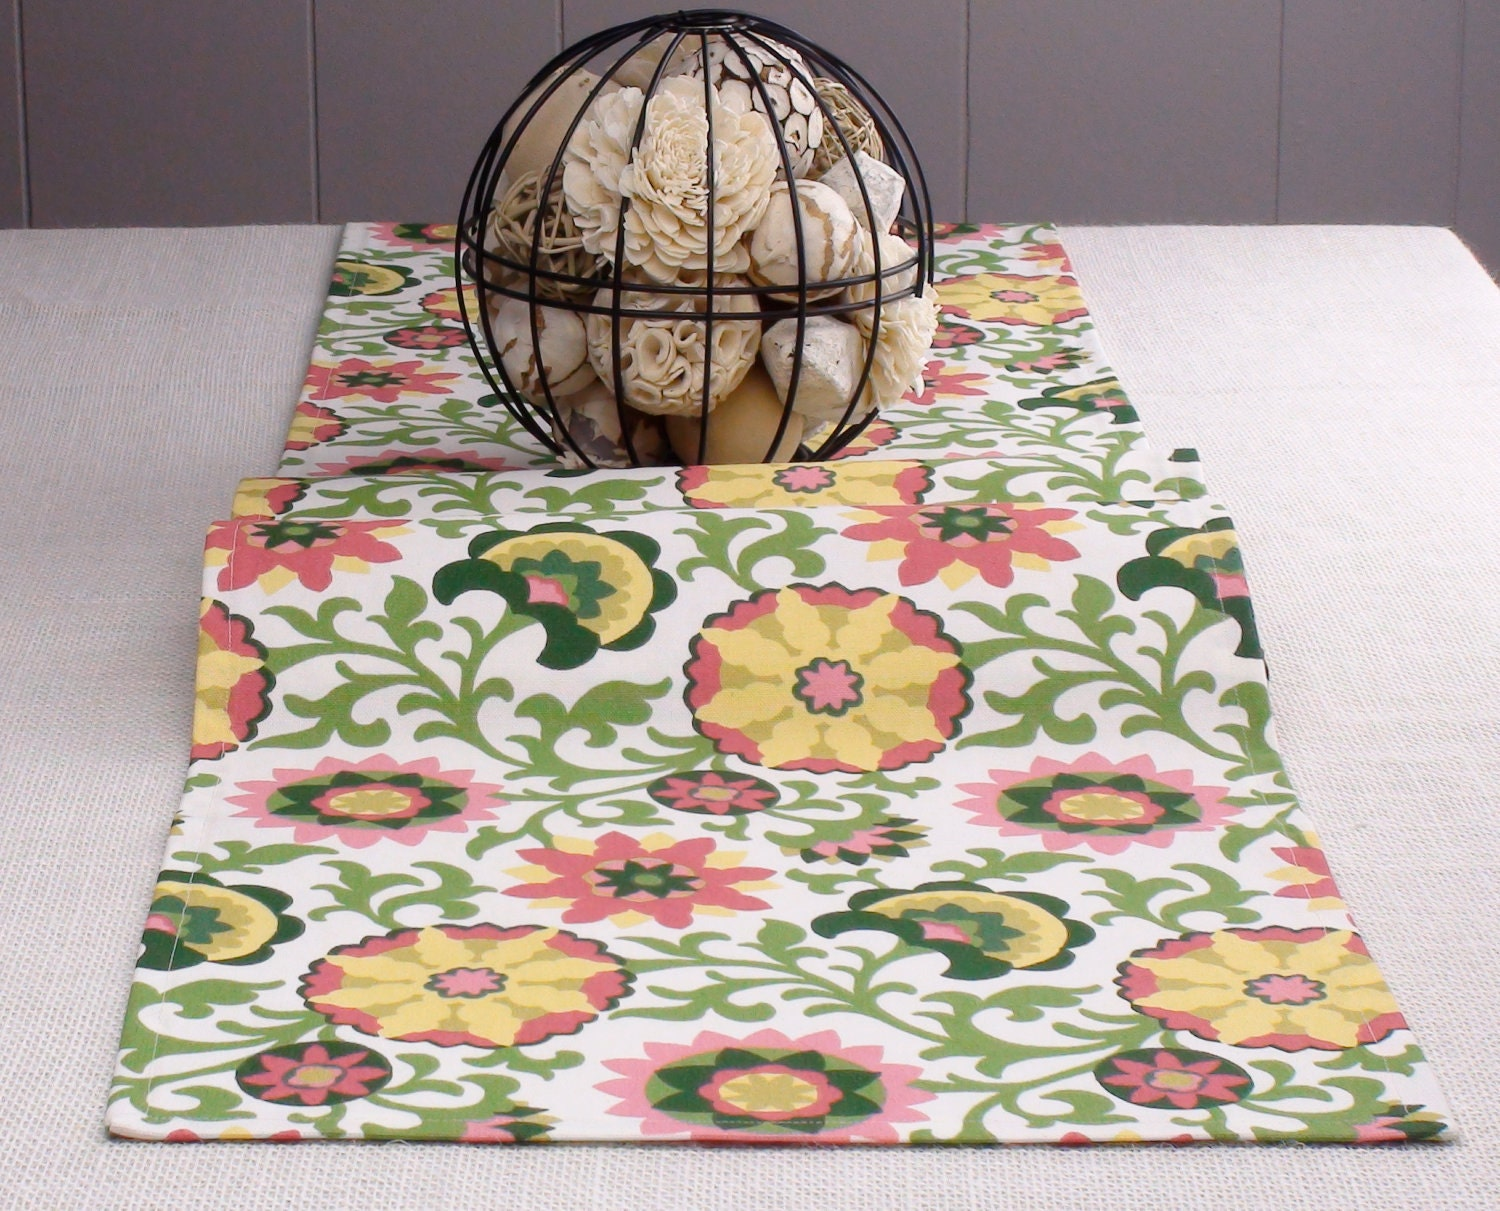 Popular items for yellow table runne on Etsy